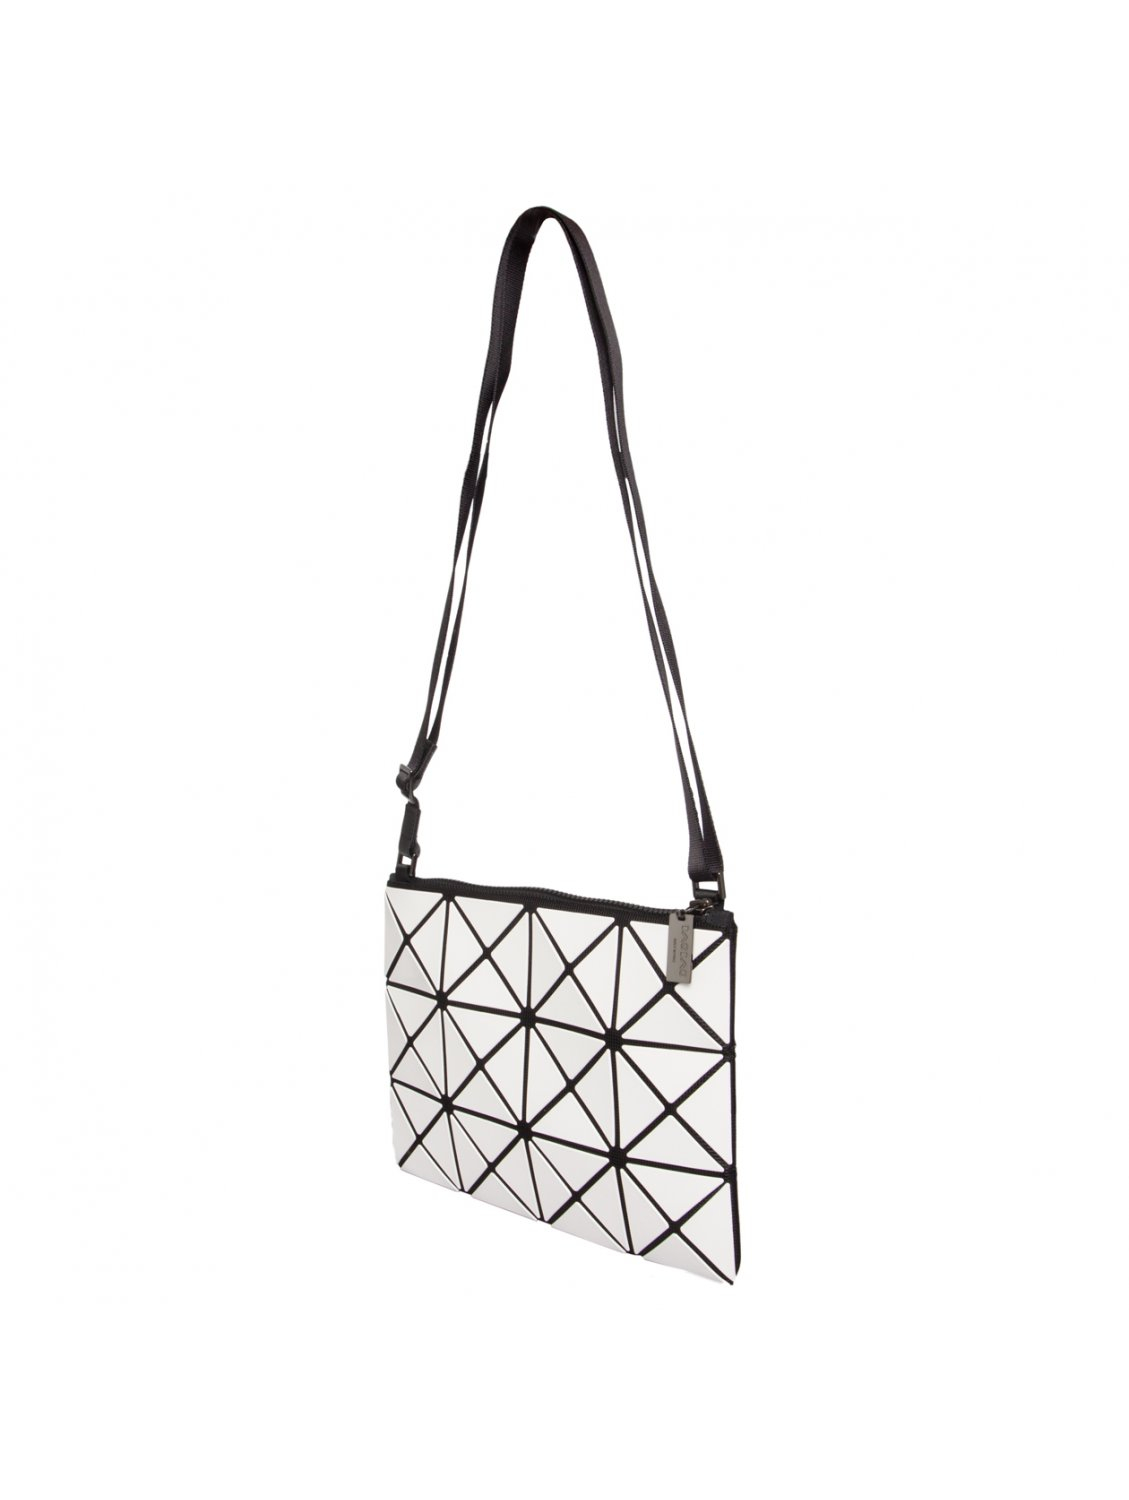 Bao Bao Issey Miyake Lucent Prism Shoulder Bag White in White - Lyst c15e829a680a8